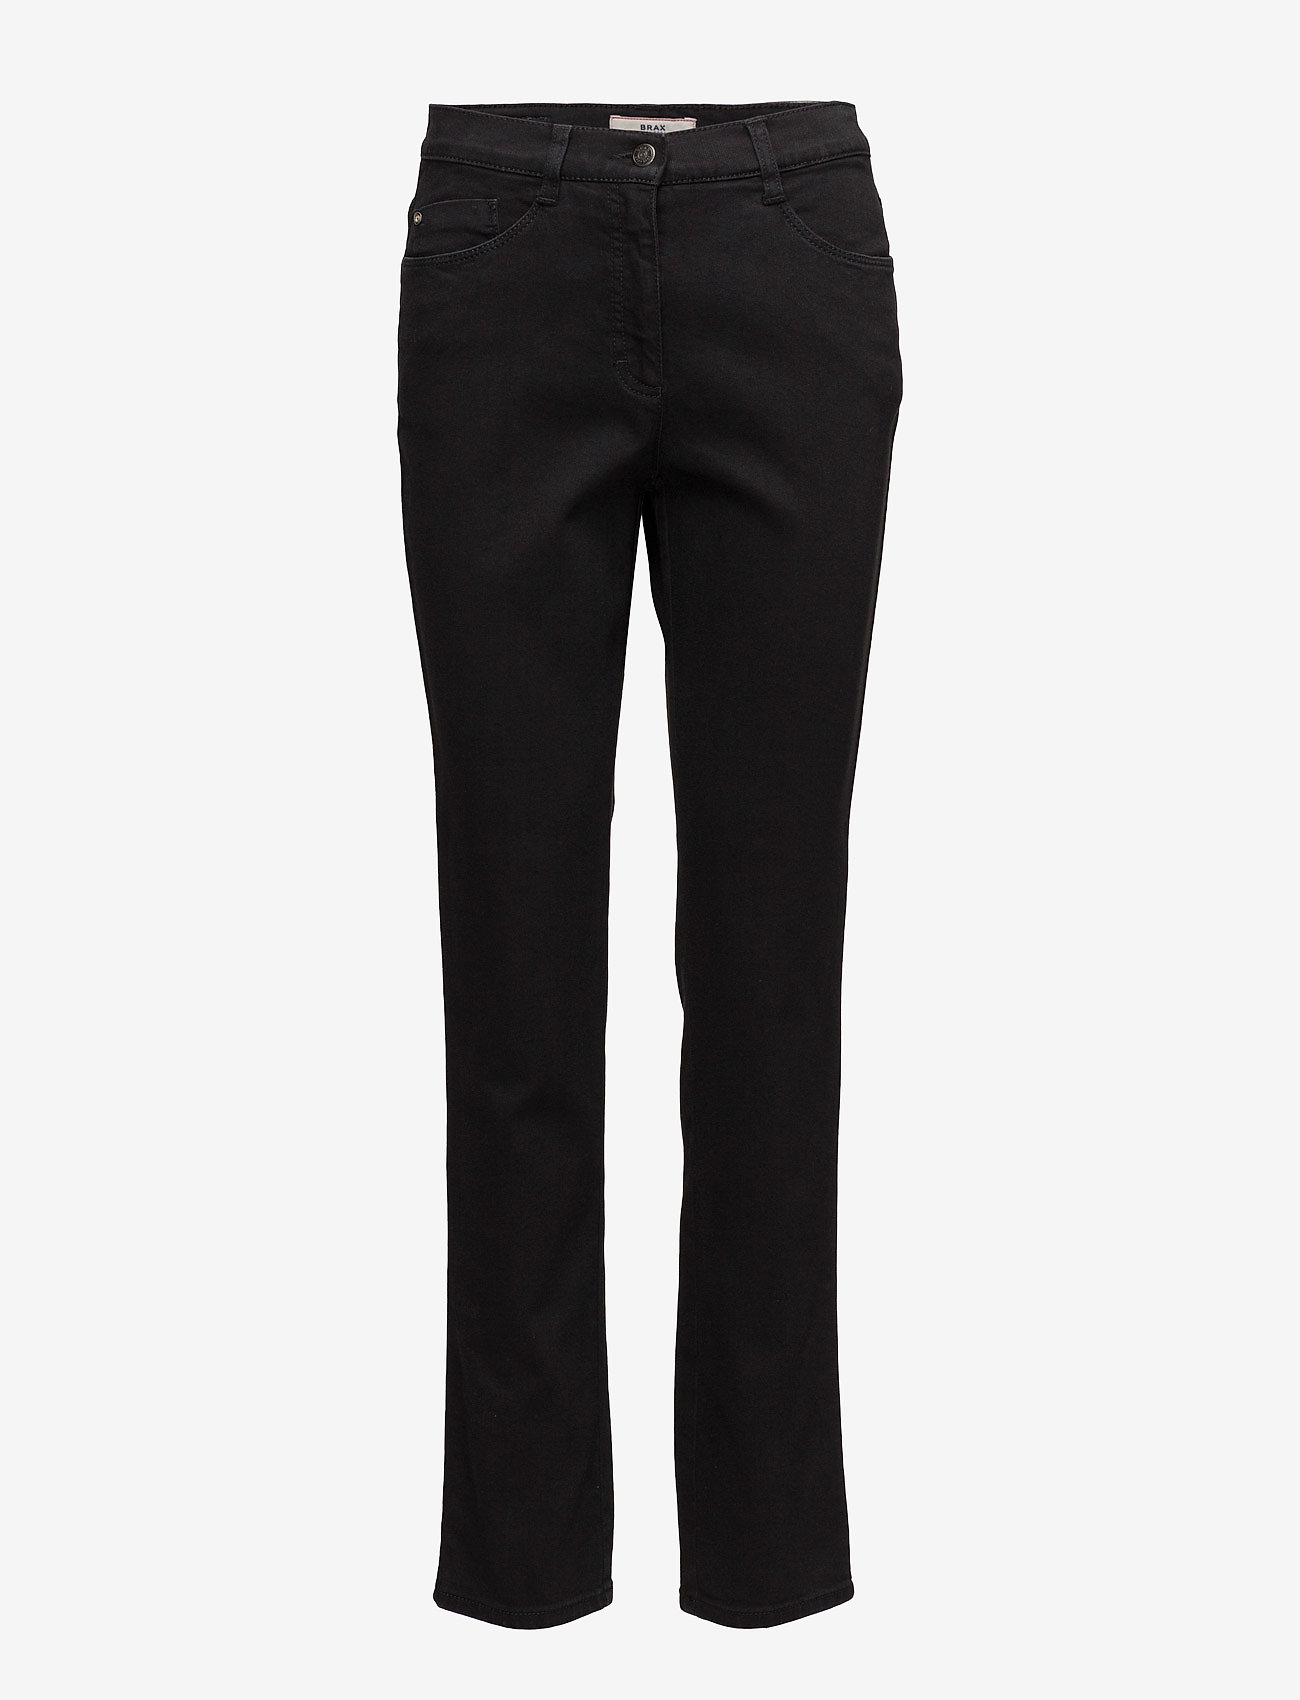 BRAX - MARY - straight jeans - clean black black - 0